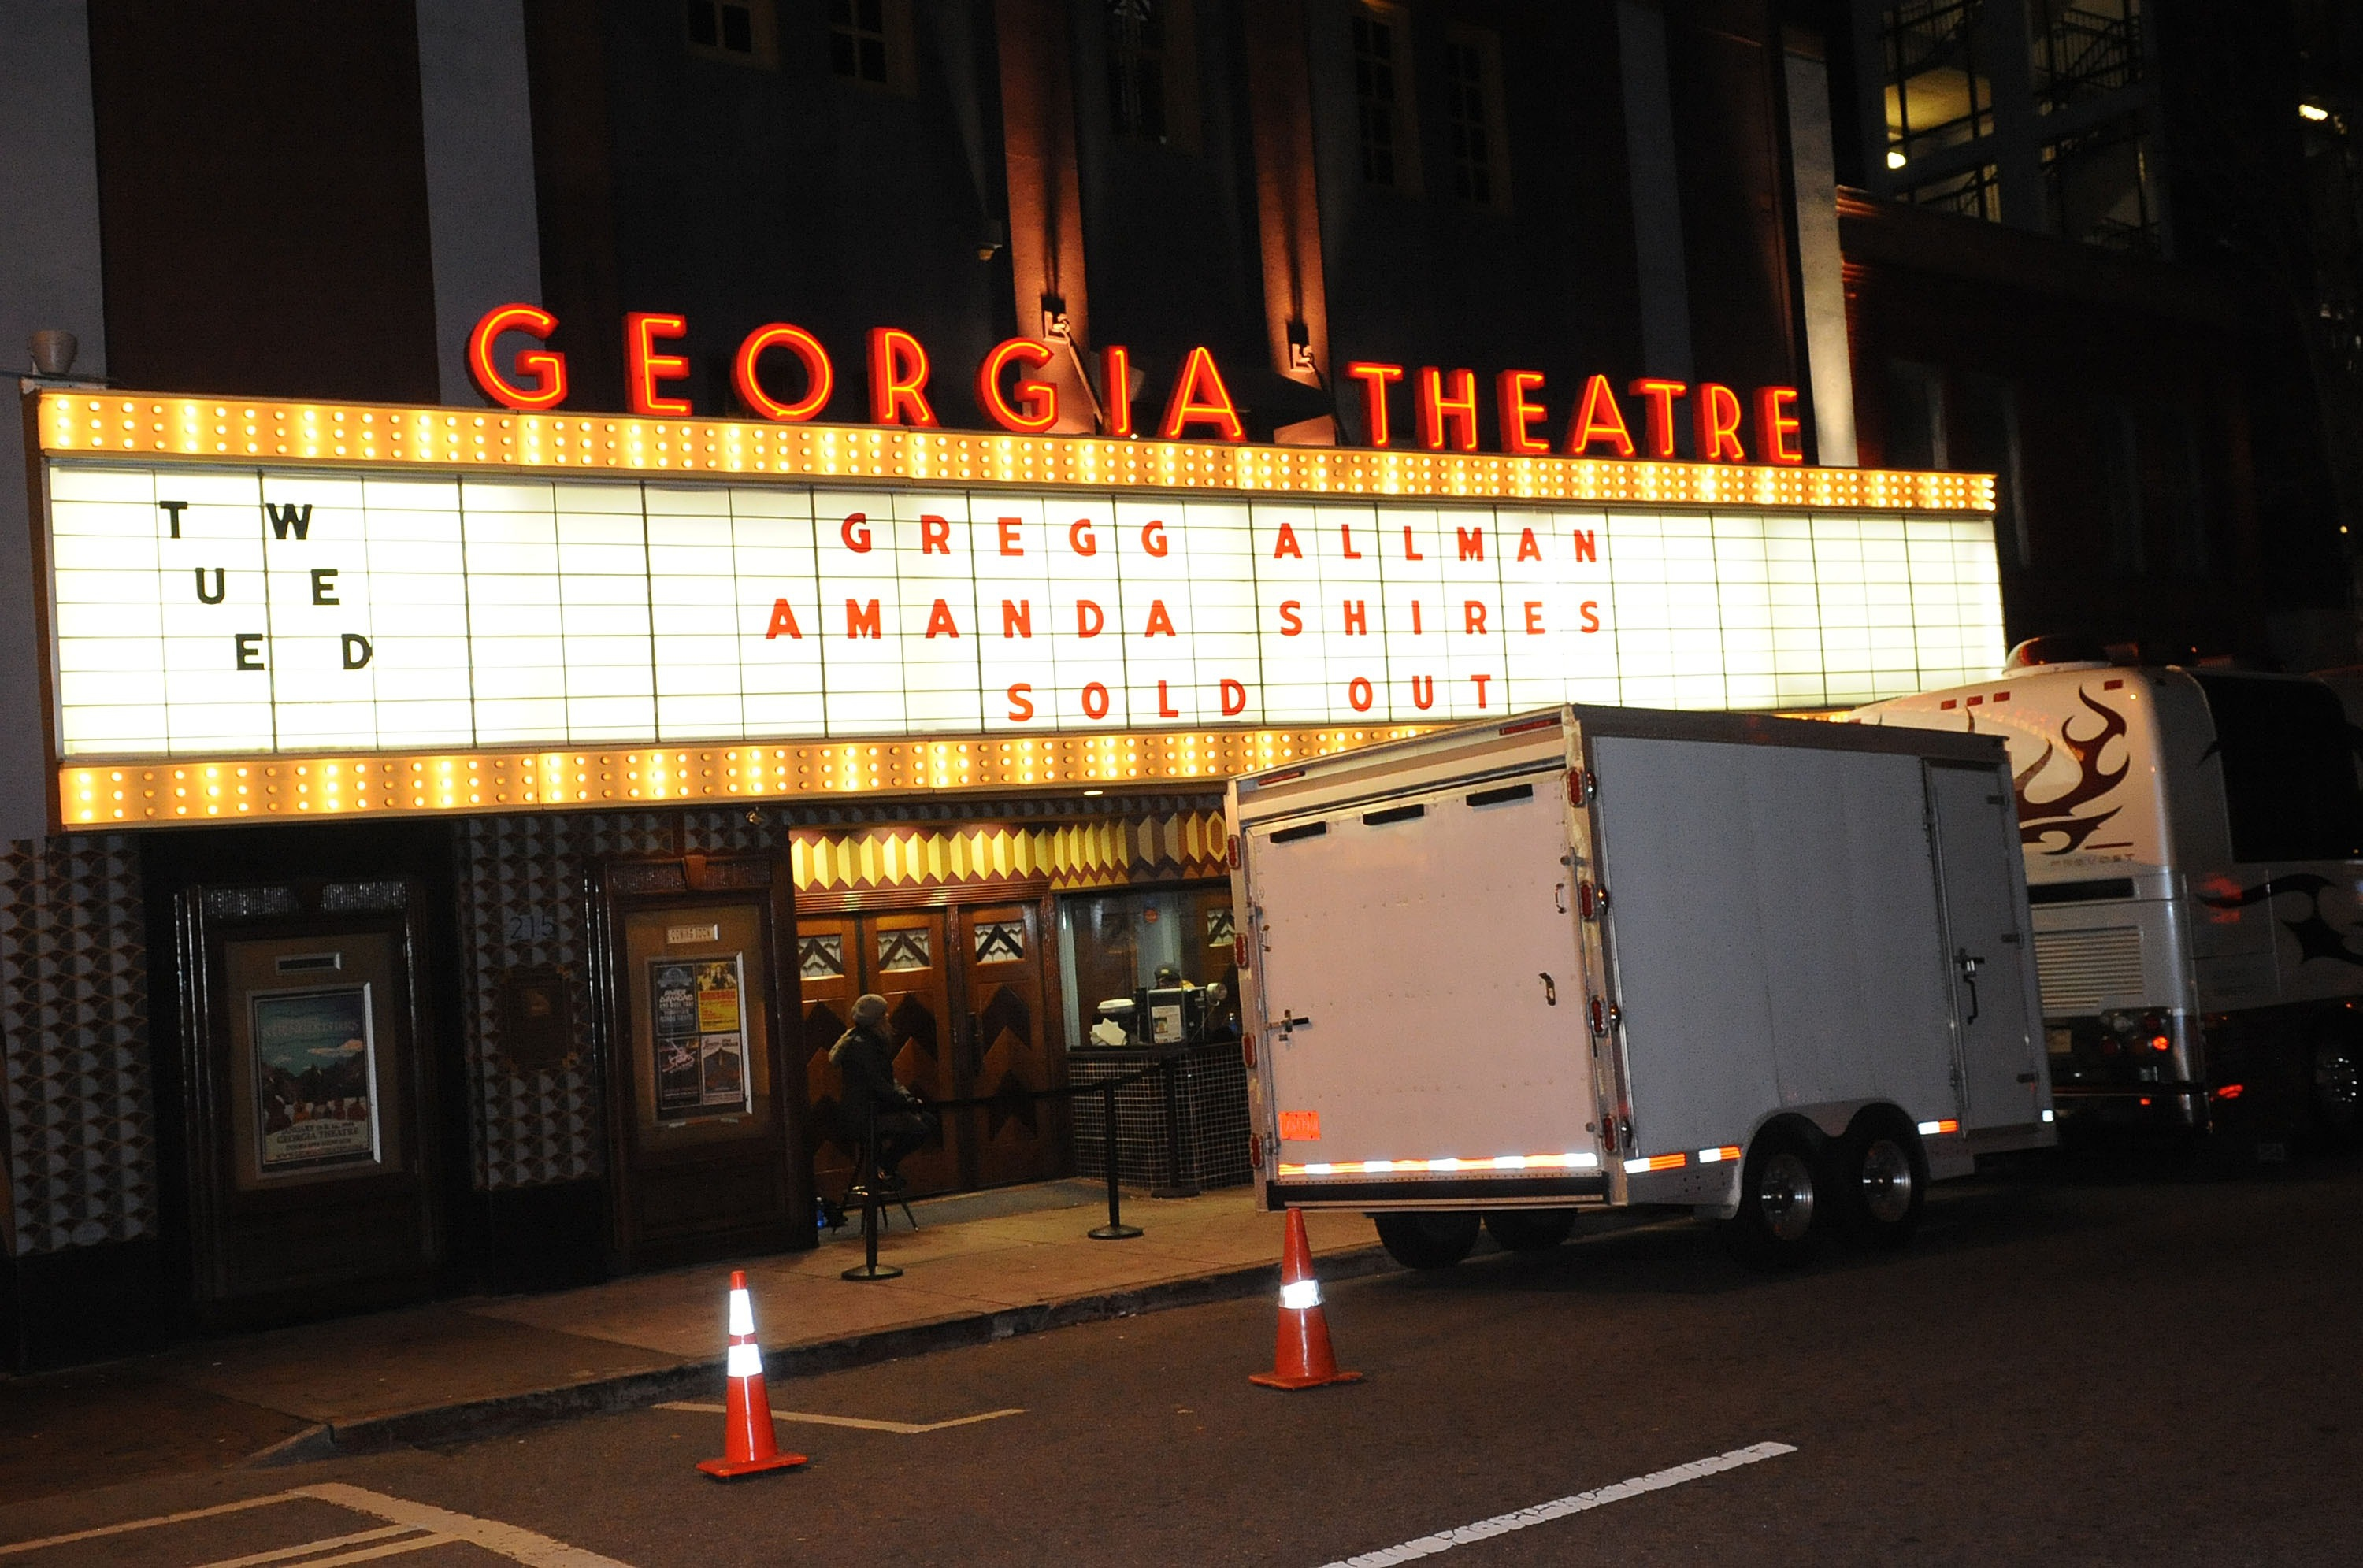 General atmosphere during the Gregg Allman concert at Georgia Theatre in Athens, Ga. on Jan. 6, 2015.